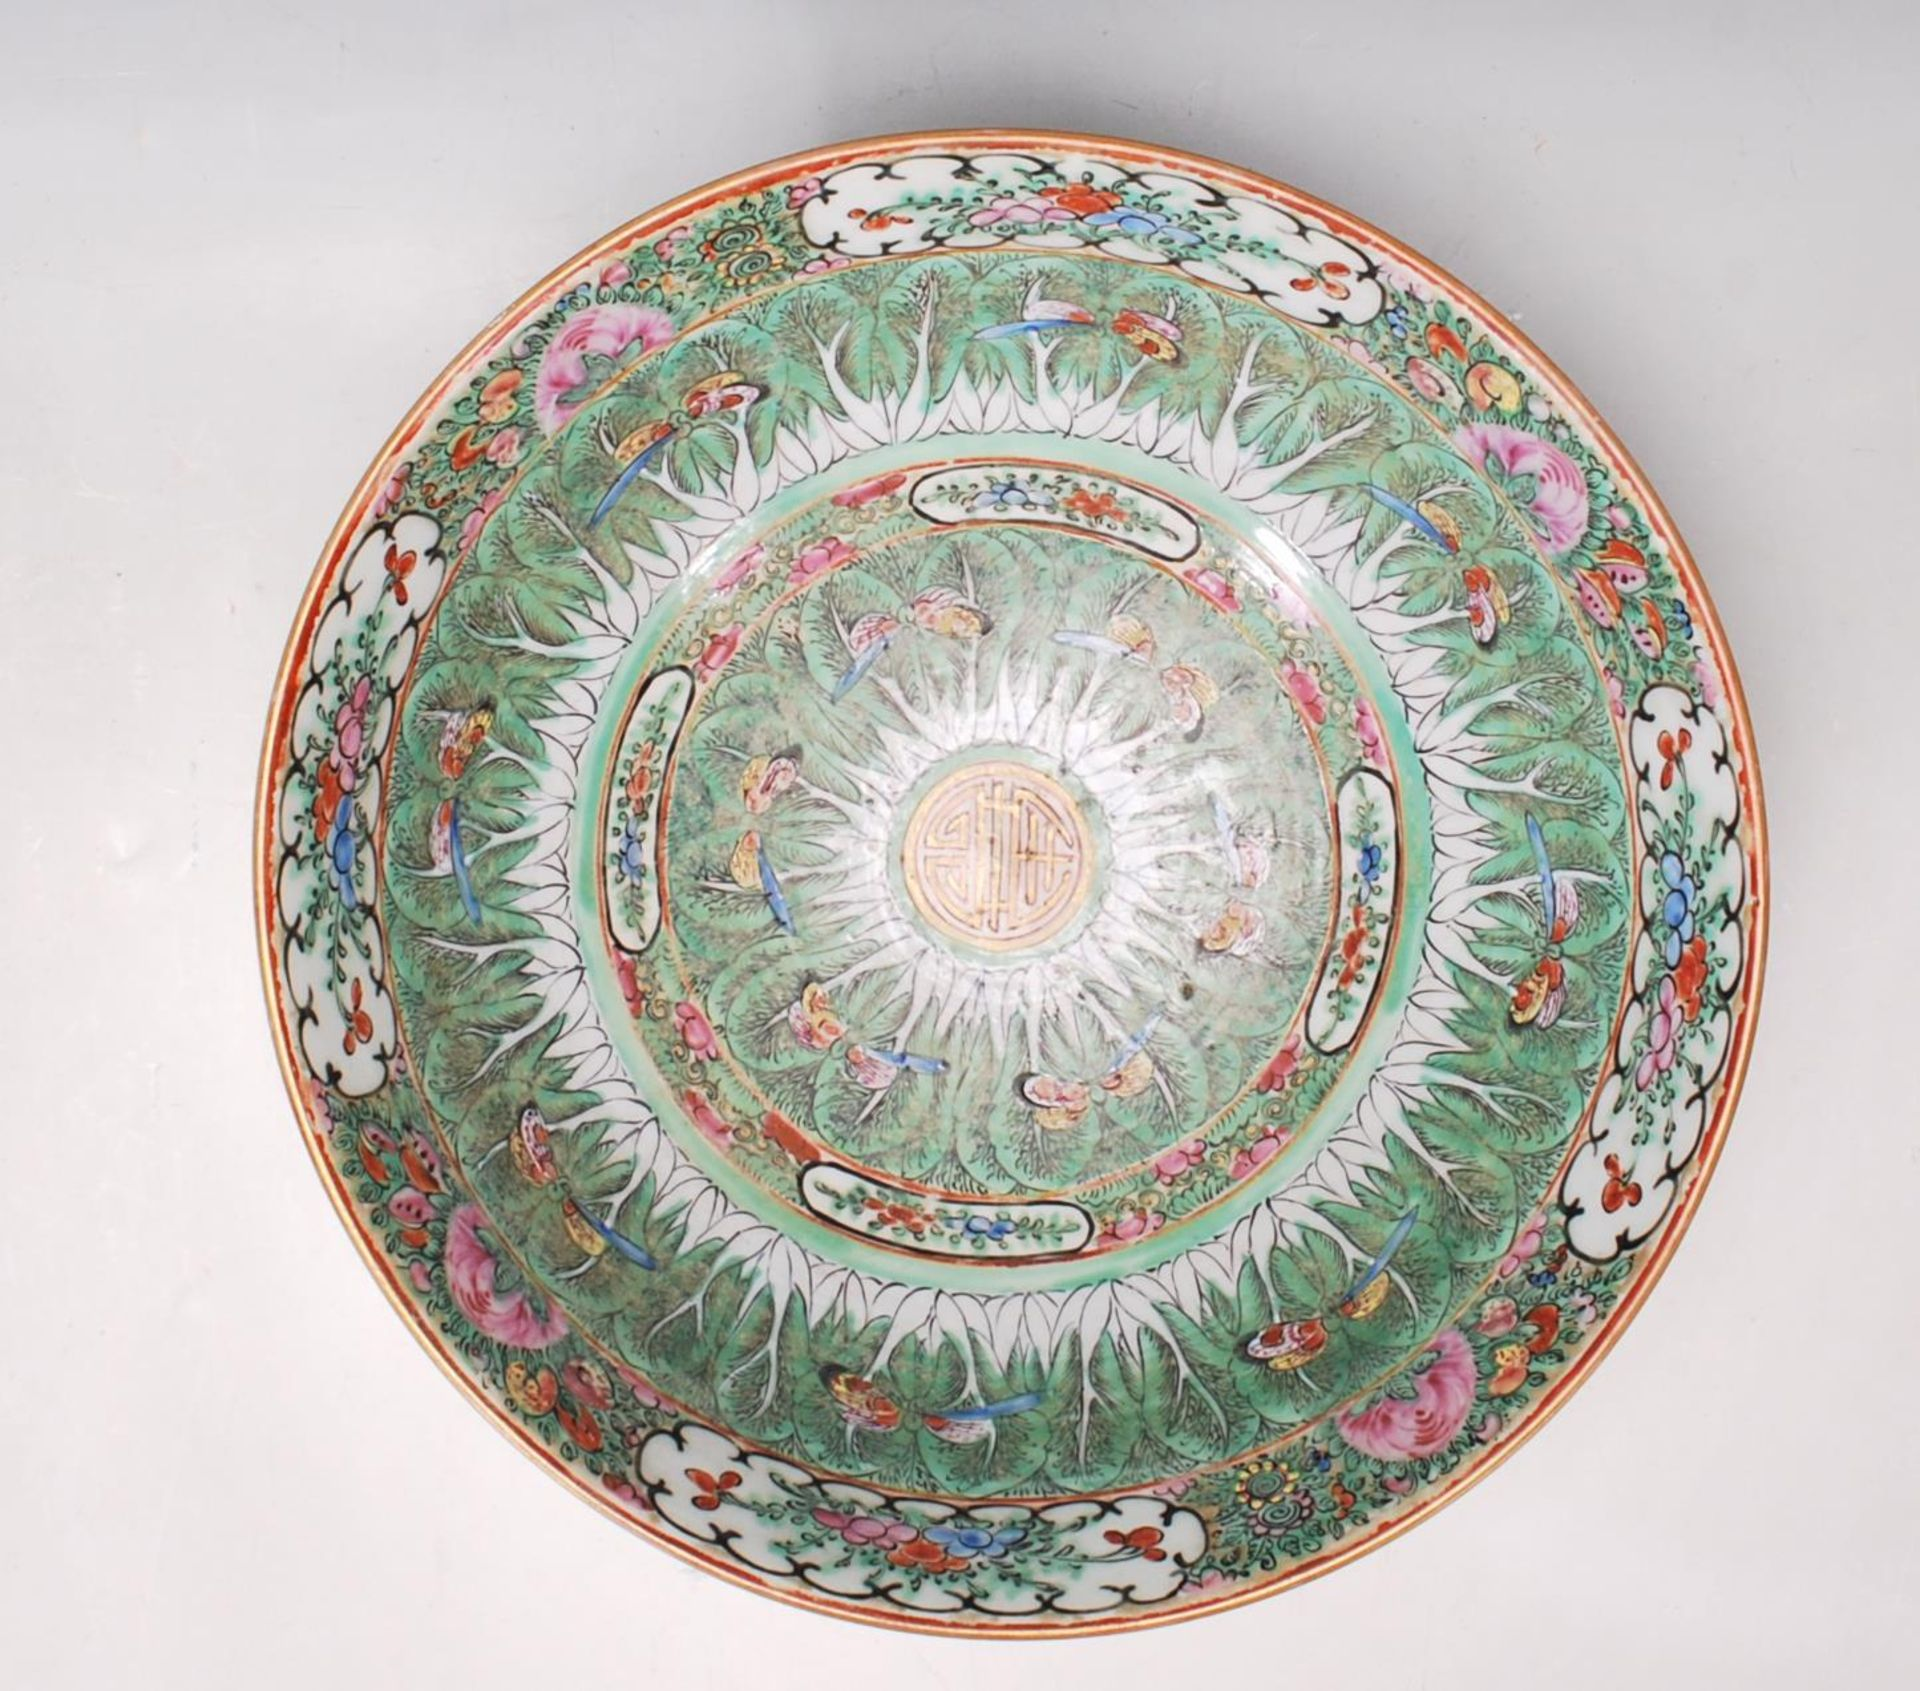 19TH CENTURY CHINESE ORIENTAL CENTRE PIECE BOWL - Image 5 of 11